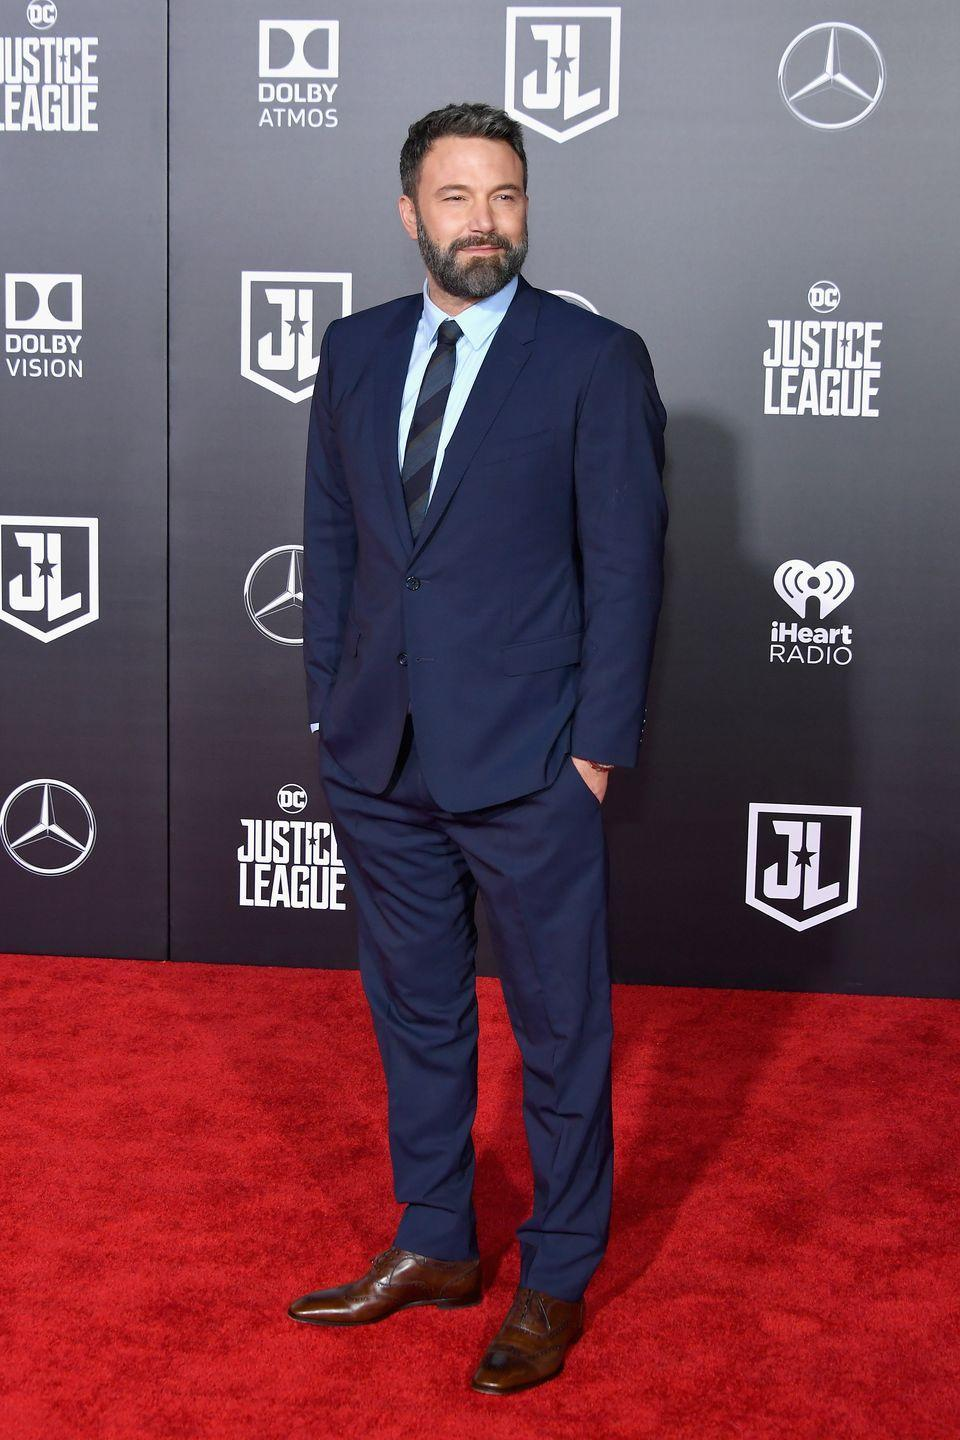 "<p>The actor first went to rehab in 2001 and later opened up about sobriety on his <a href=""https://www.facebook.com/benaffleck/posts/1425085557565867"" rel=""nofollow noopener"" target=""_blank"" data-ylk=""slk:Facebook"" class=""link rapid-noclick-resp"">Facebook</a> page in March 2017.</p><p>'I have completed treatment for alcohol addiction; something I've dealt with in the past and will continue to confront,' he wrote. 'I want to live life to the fullest and be the best father I can be.' </p><p>In February 2020, the actor told <a href=""https://www.goodmorningamerica.com/culture/video/ben-affleck-shares-moved-struggles-alcohol-part-69095953"" rel=""nofollow noopener"" target=""_blank"" data-ylk=""slk:ABC News"" class=""link rapid-noclick-resp"">ABC News</a>: 'I was sober for a couple of years and then I thought, ""You know, I want to just drink like a normal person and I want to have wine at dinner."" And I was able to for about eight years.' </p><p>After years of struggling with his addiction and divorce from Jennifer Garner in 2018, he also the <a href=""https://www.nytimes.com/2020/02/18/movies/ben-affleck.html"" rel=""nofollow noopener"" target=""_blank"" data-ylk=""slk:New York Times"" class=""link rapid-noclick-resp"">New York Times</a> in 2020 how fatherhood has taught him to be sober 'during these formative years for my kids'. </p>"